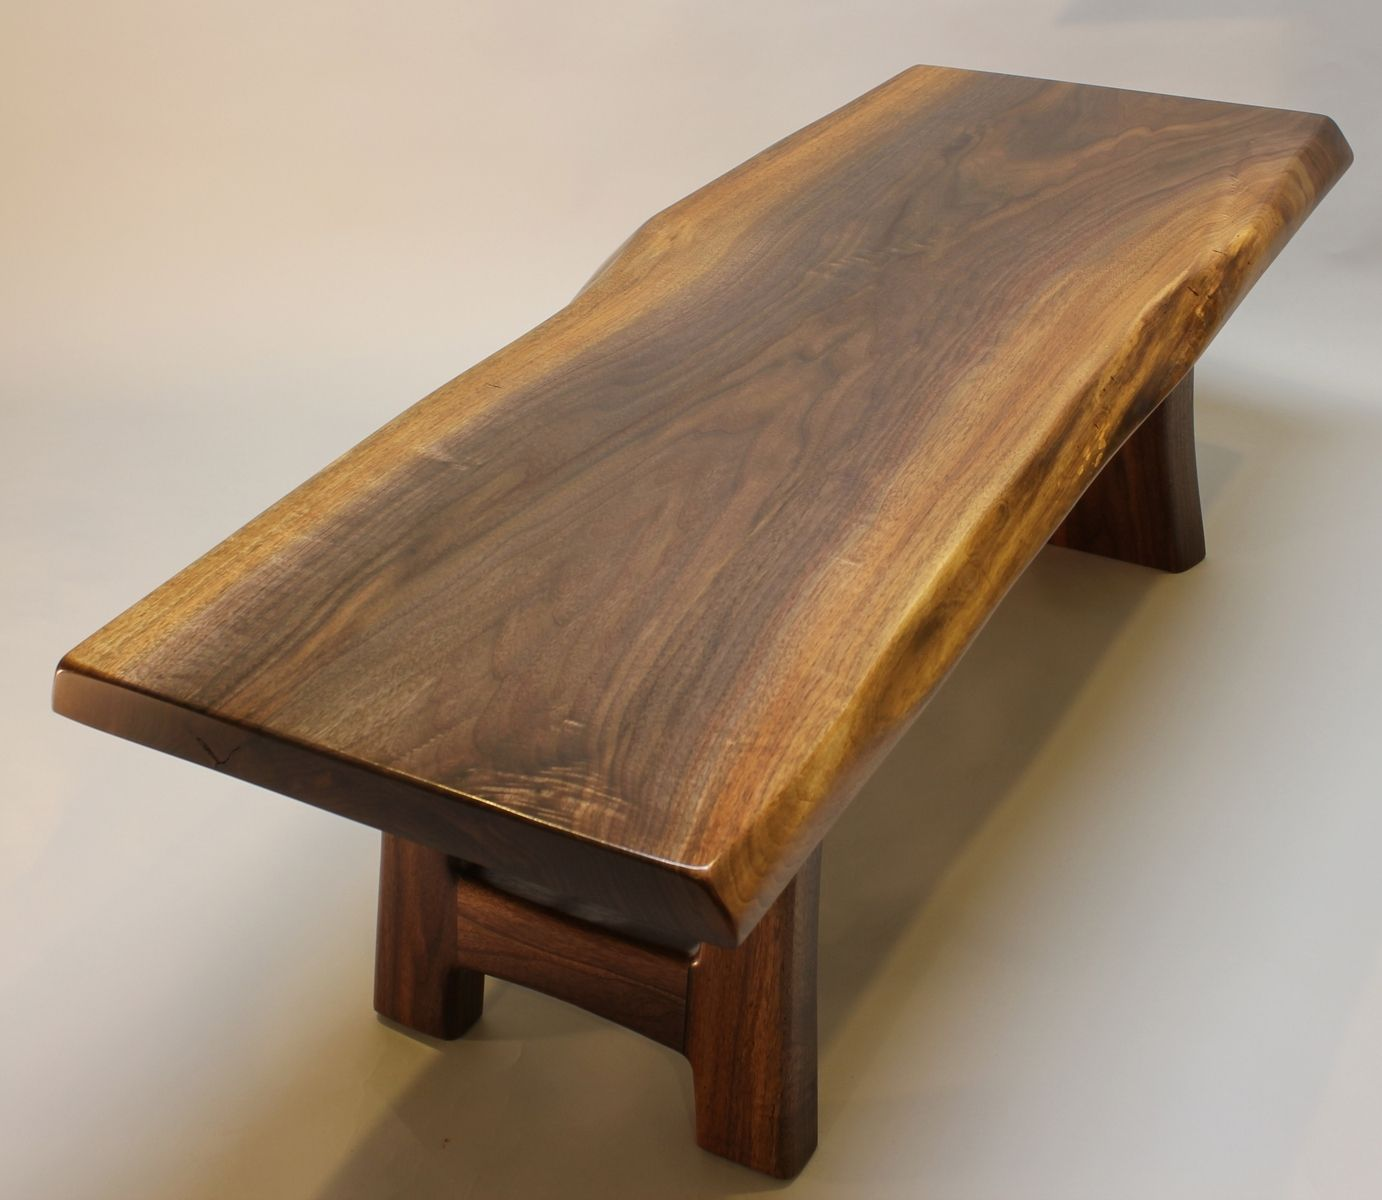 Custom Made Black Walnut Live Edge Coffee Table - Handmade Black Walnut Live Edge Coffee Table By J.R Signature